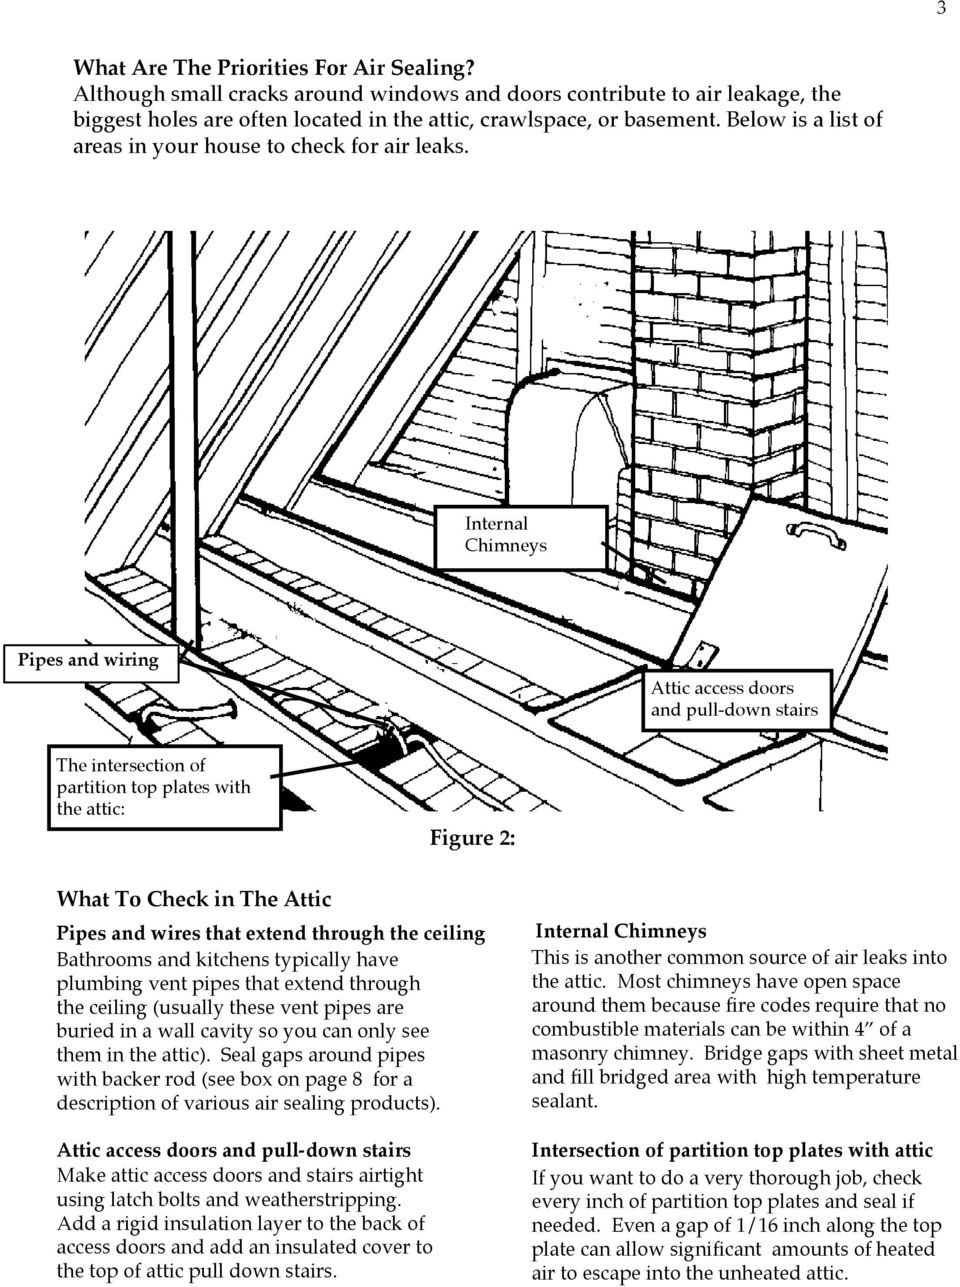 Internal Chimneys Pipes and wiring Attic access doors and pull-down stairs The intersection of partition top plates with the attic: Figure 2: What To Check in The Attic Pipes and wires that extend